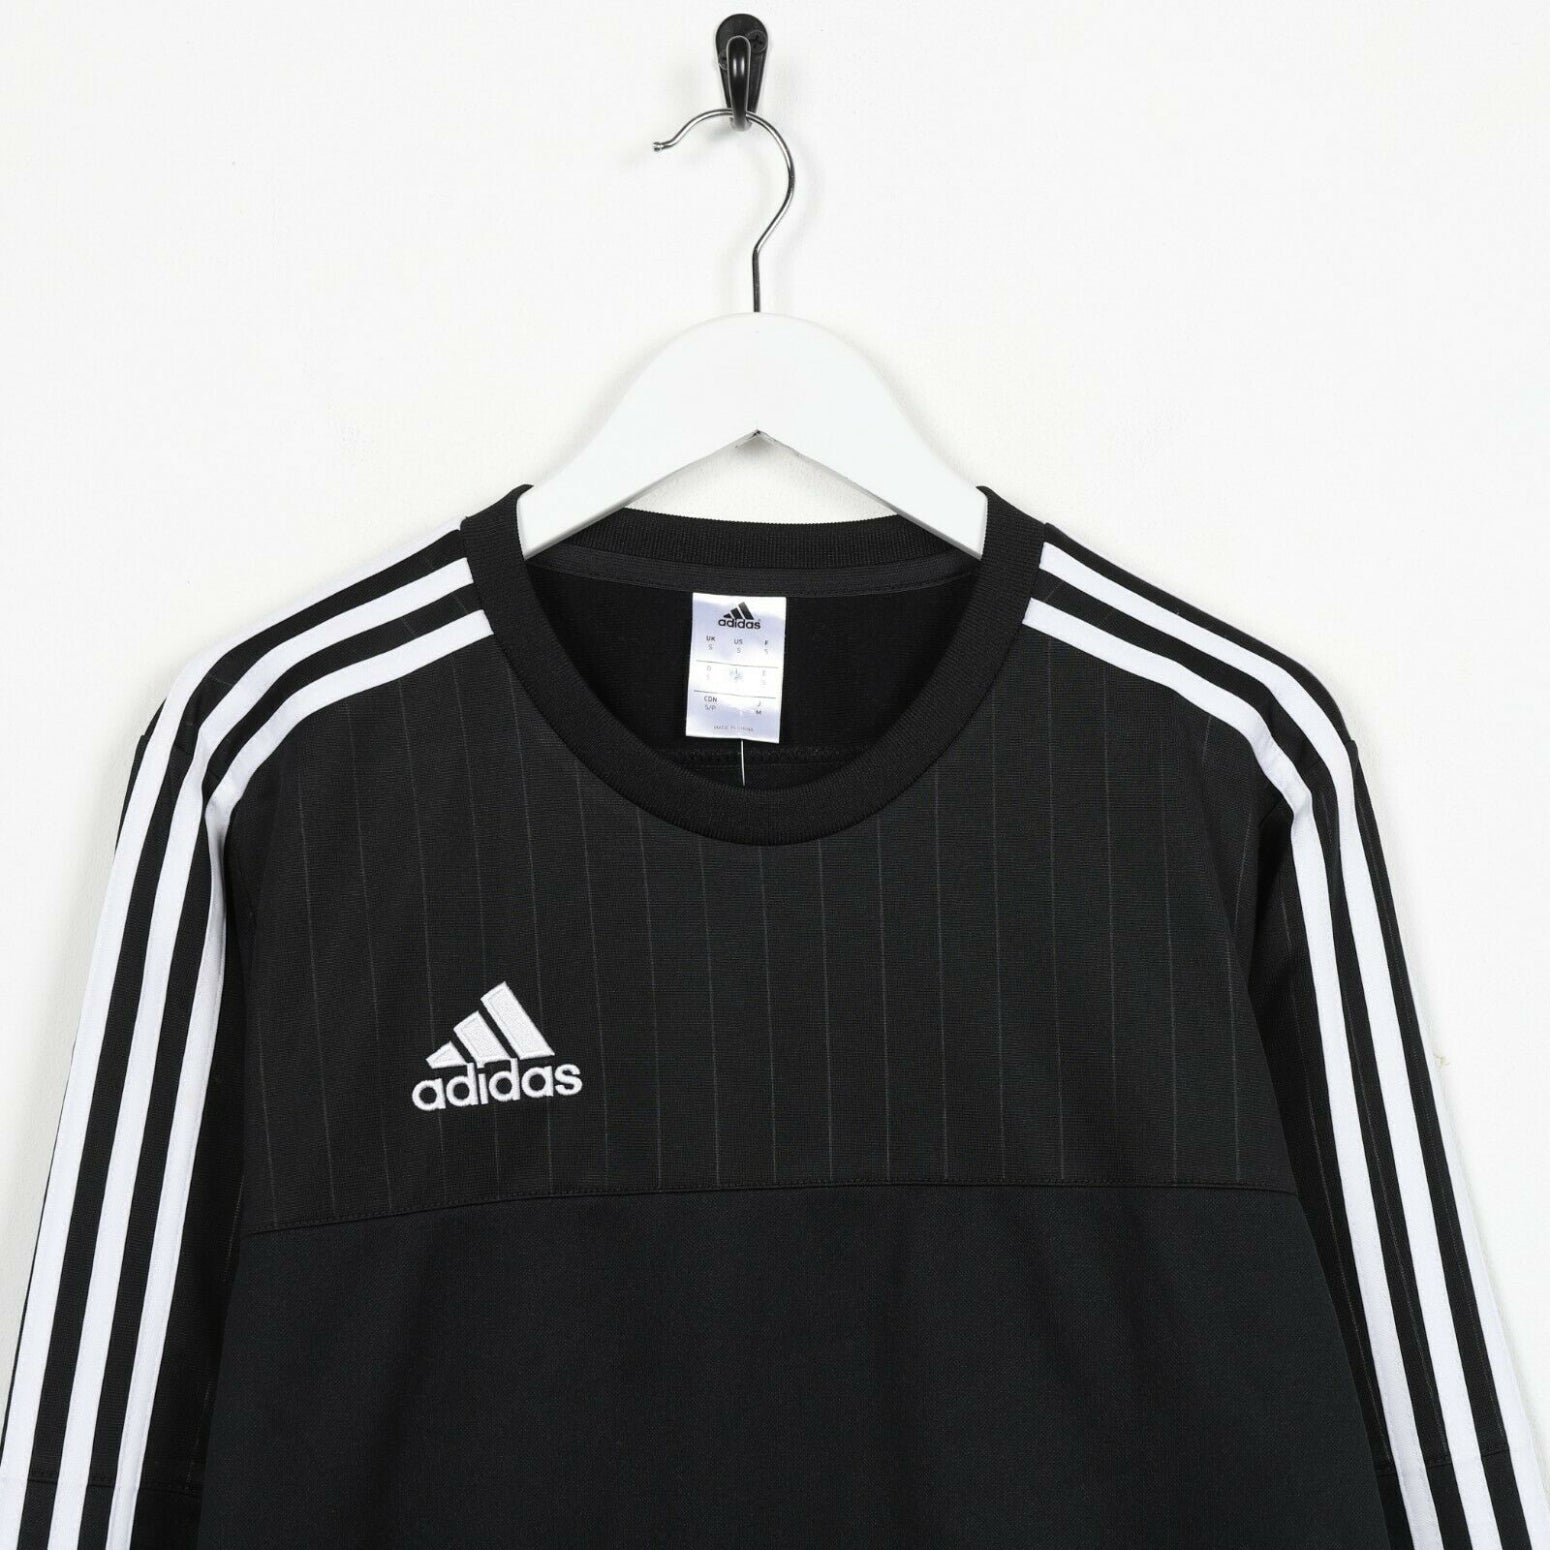 Vintage ADIDAS Small Logo Polyester Sweatshirt Jumper Black | Small S